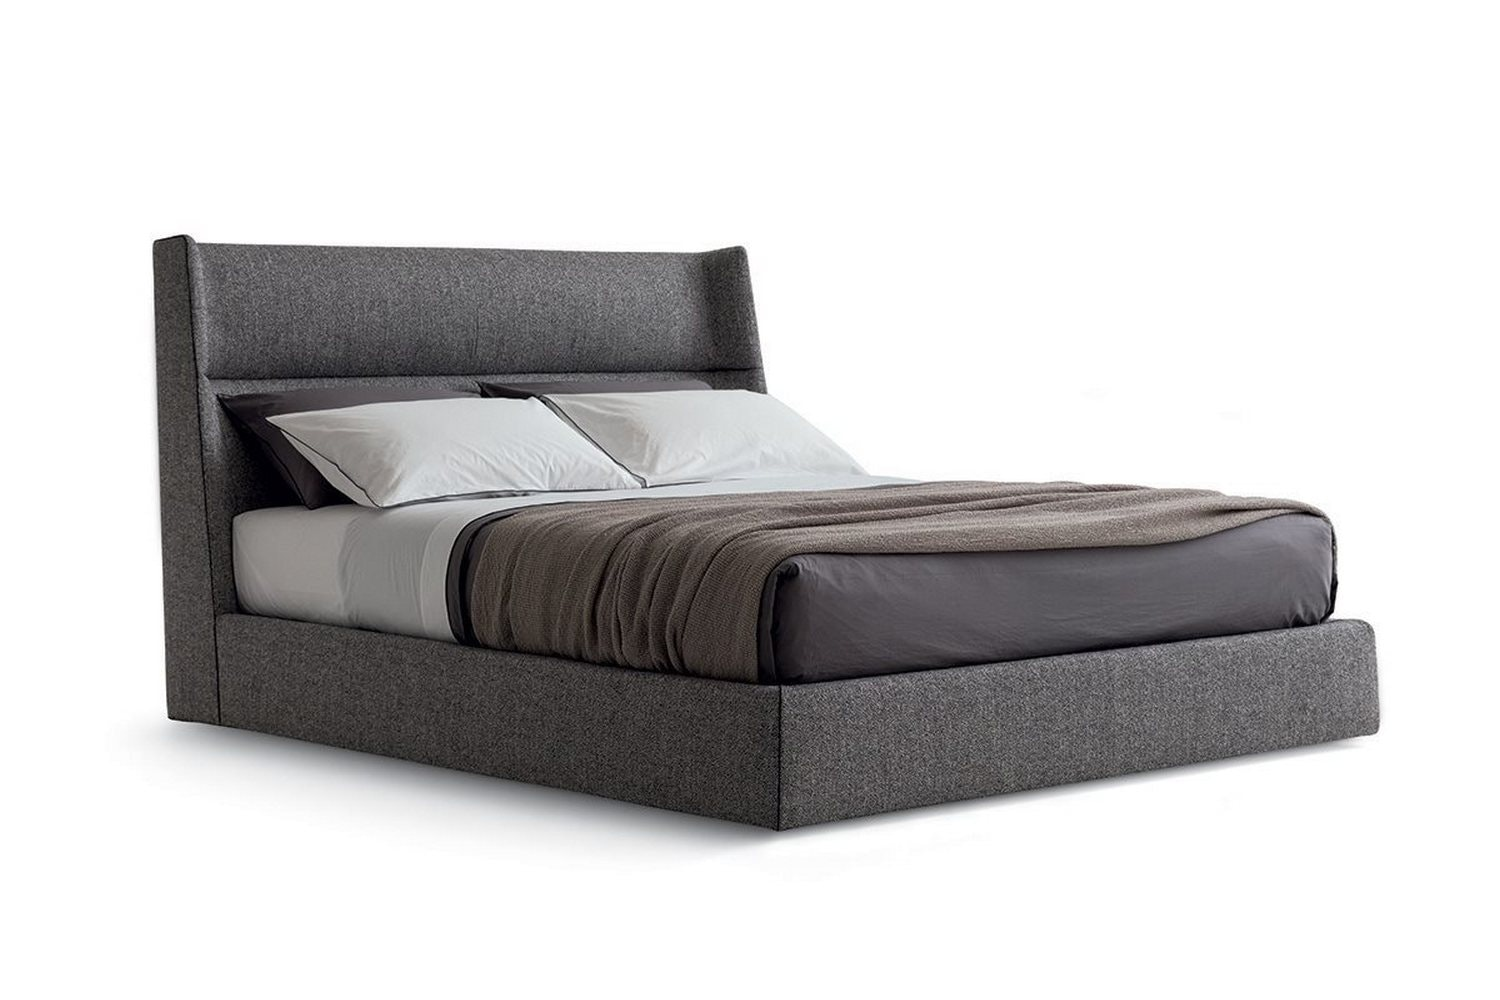 Chloe Bed by Carlo Colombo for Poliform